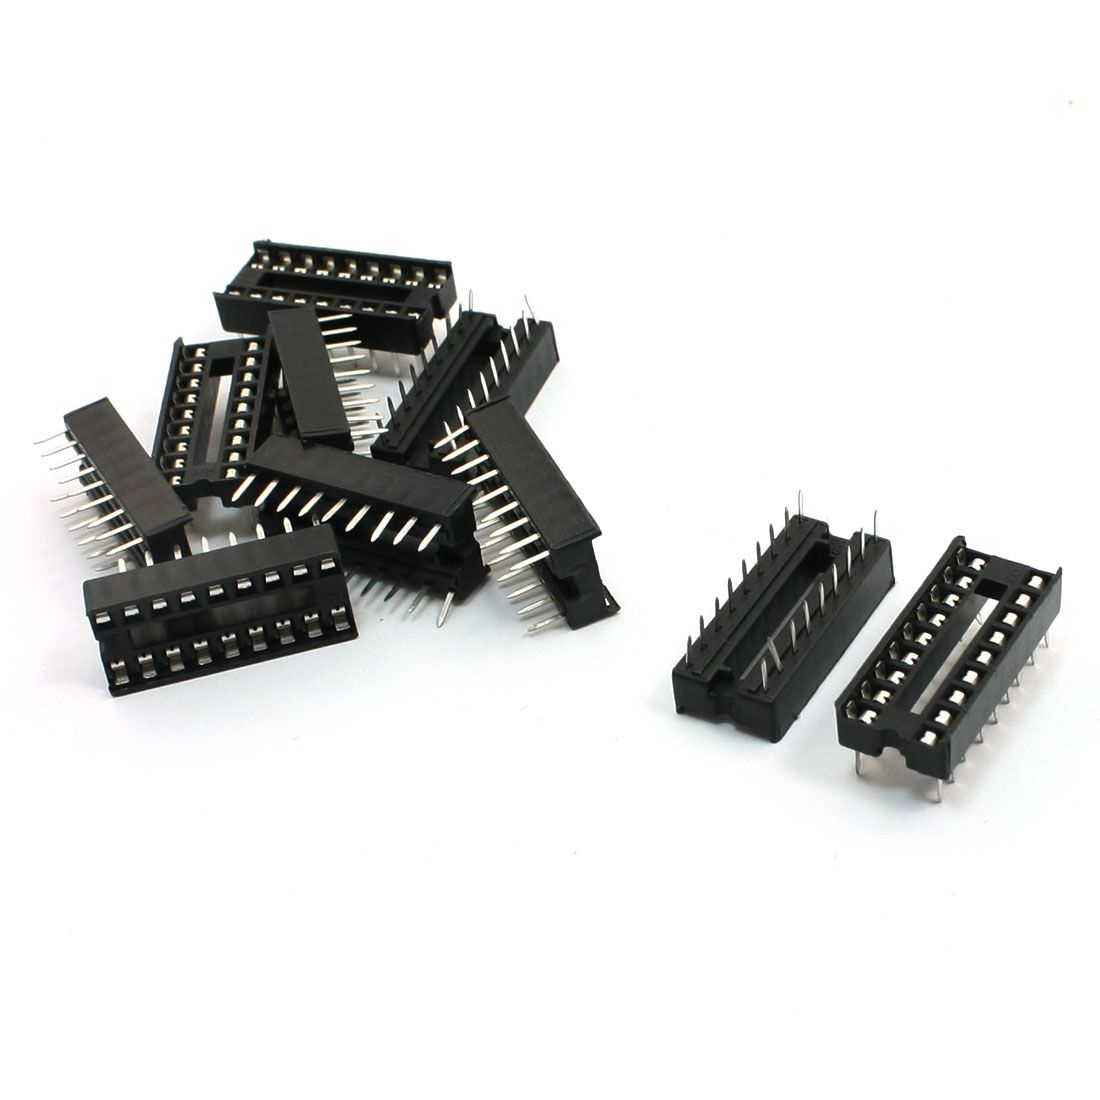 10 Pcs 2.54mm Pitch Soldering 18 Pin DIP IC Sockets Adaptor